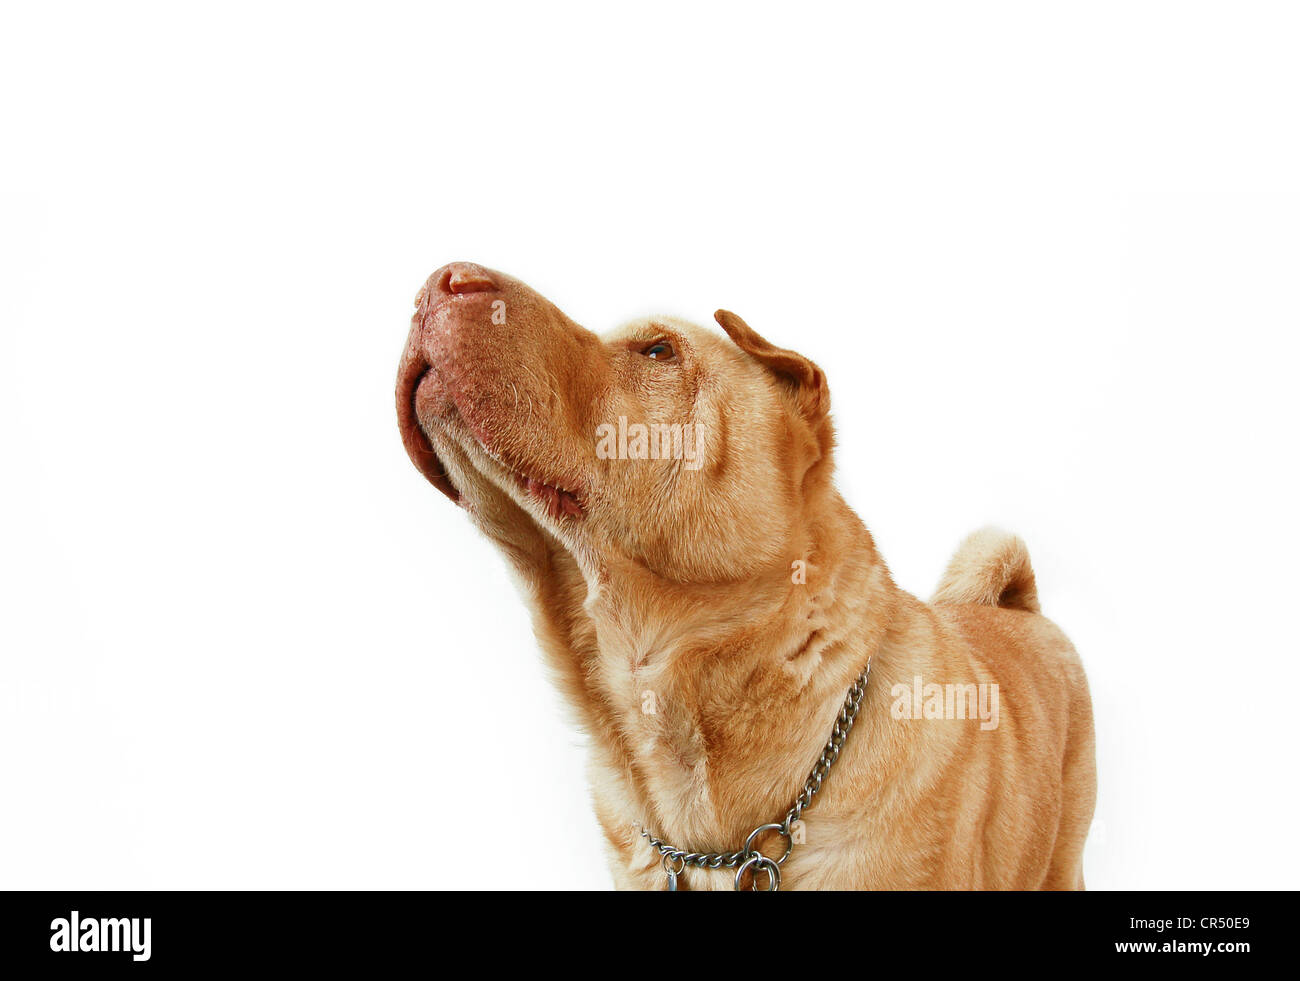 cream shar pei adult dog with dog chain looking up to the sky - Stock Image